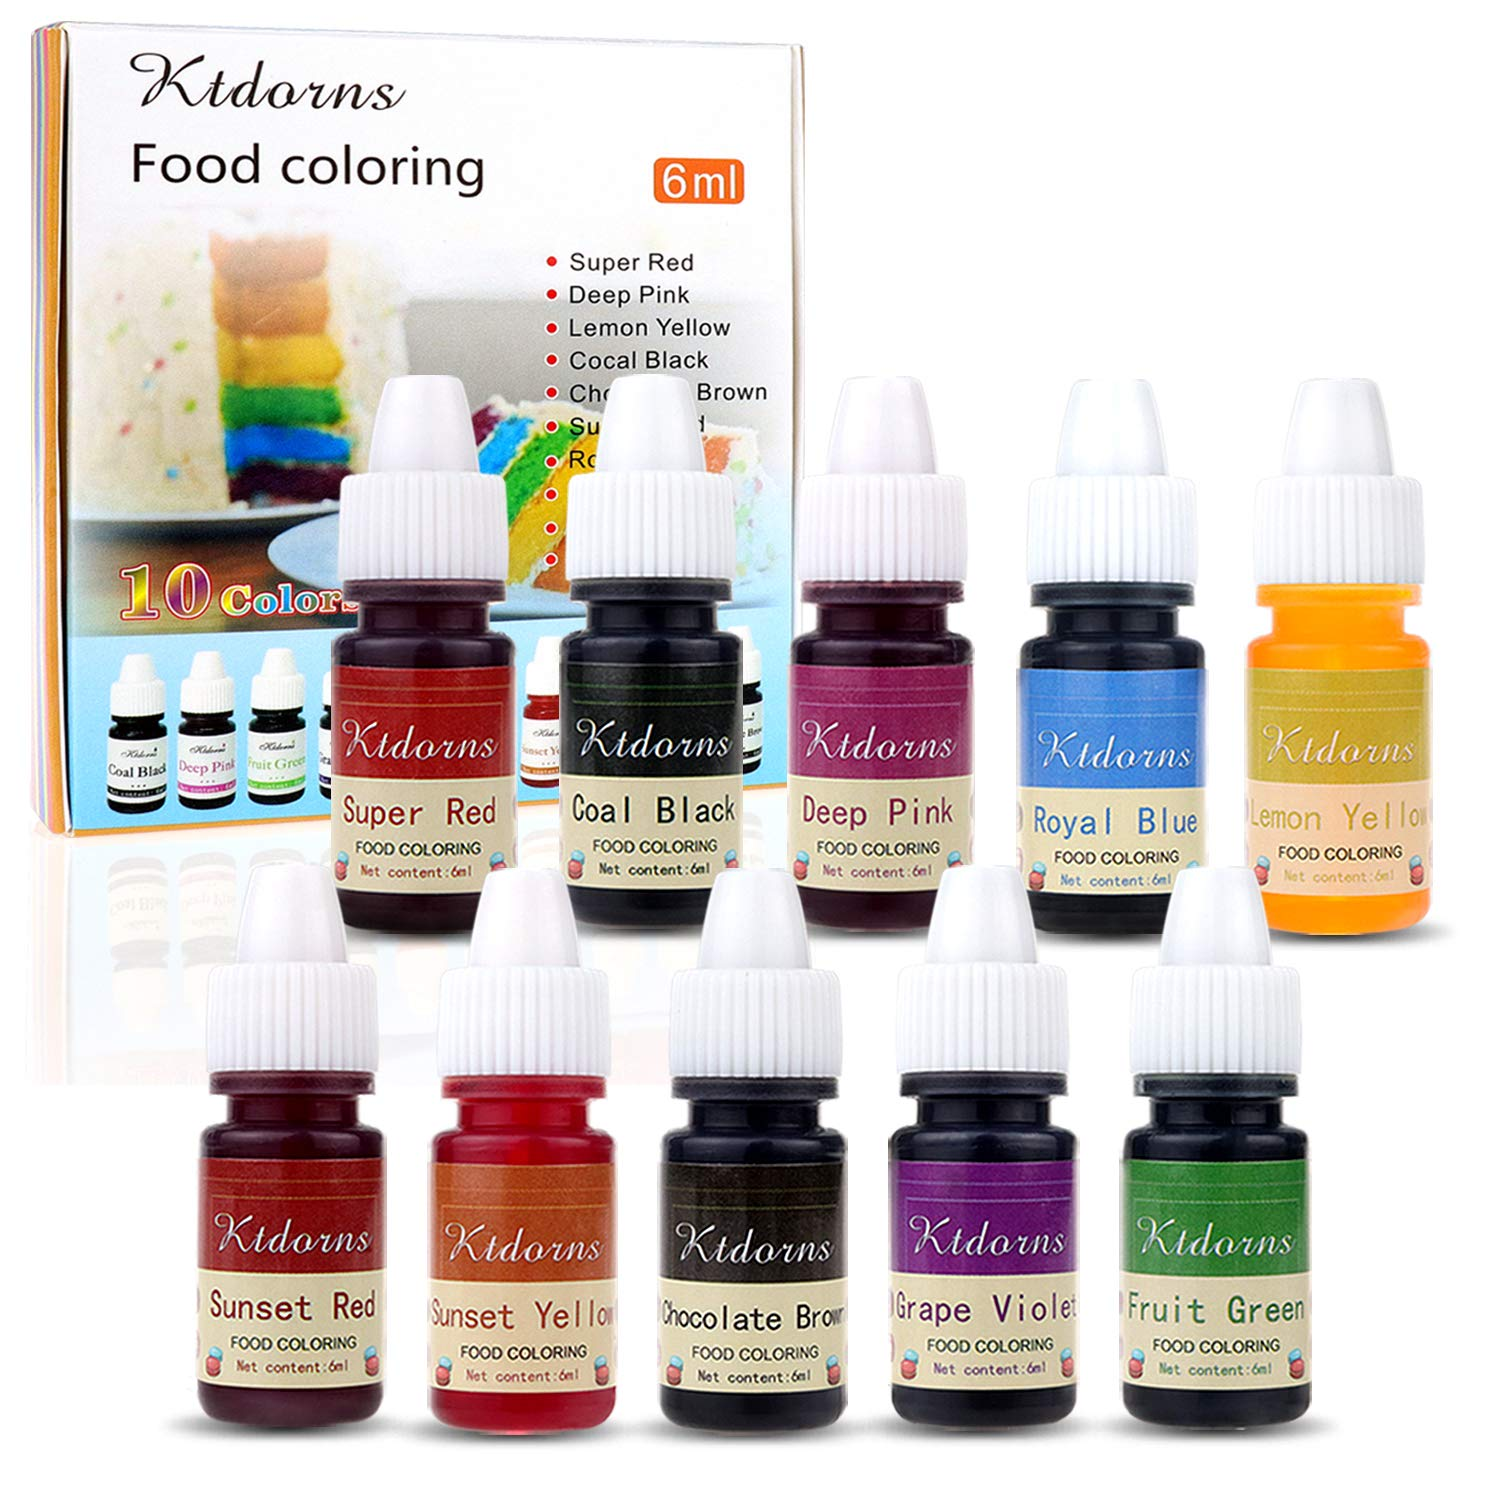 Food Colouring Food dye Flo Concentrated Liquid Food Air Brush - 10 Colours (6ml)